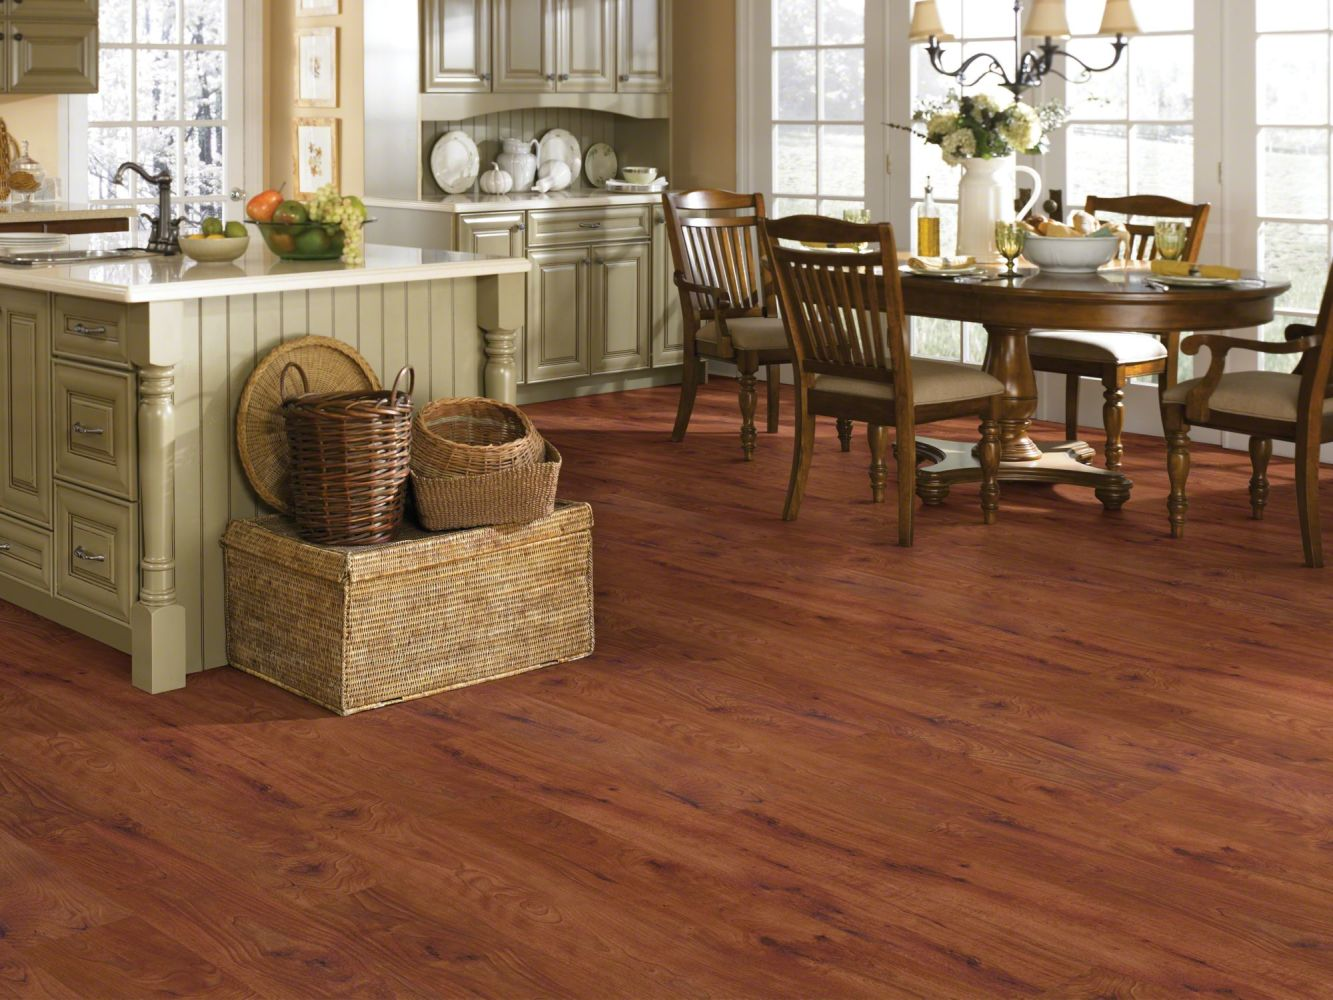 Shaw Floors Nfa HS World Bazar 20 Burlington 00650_VH512